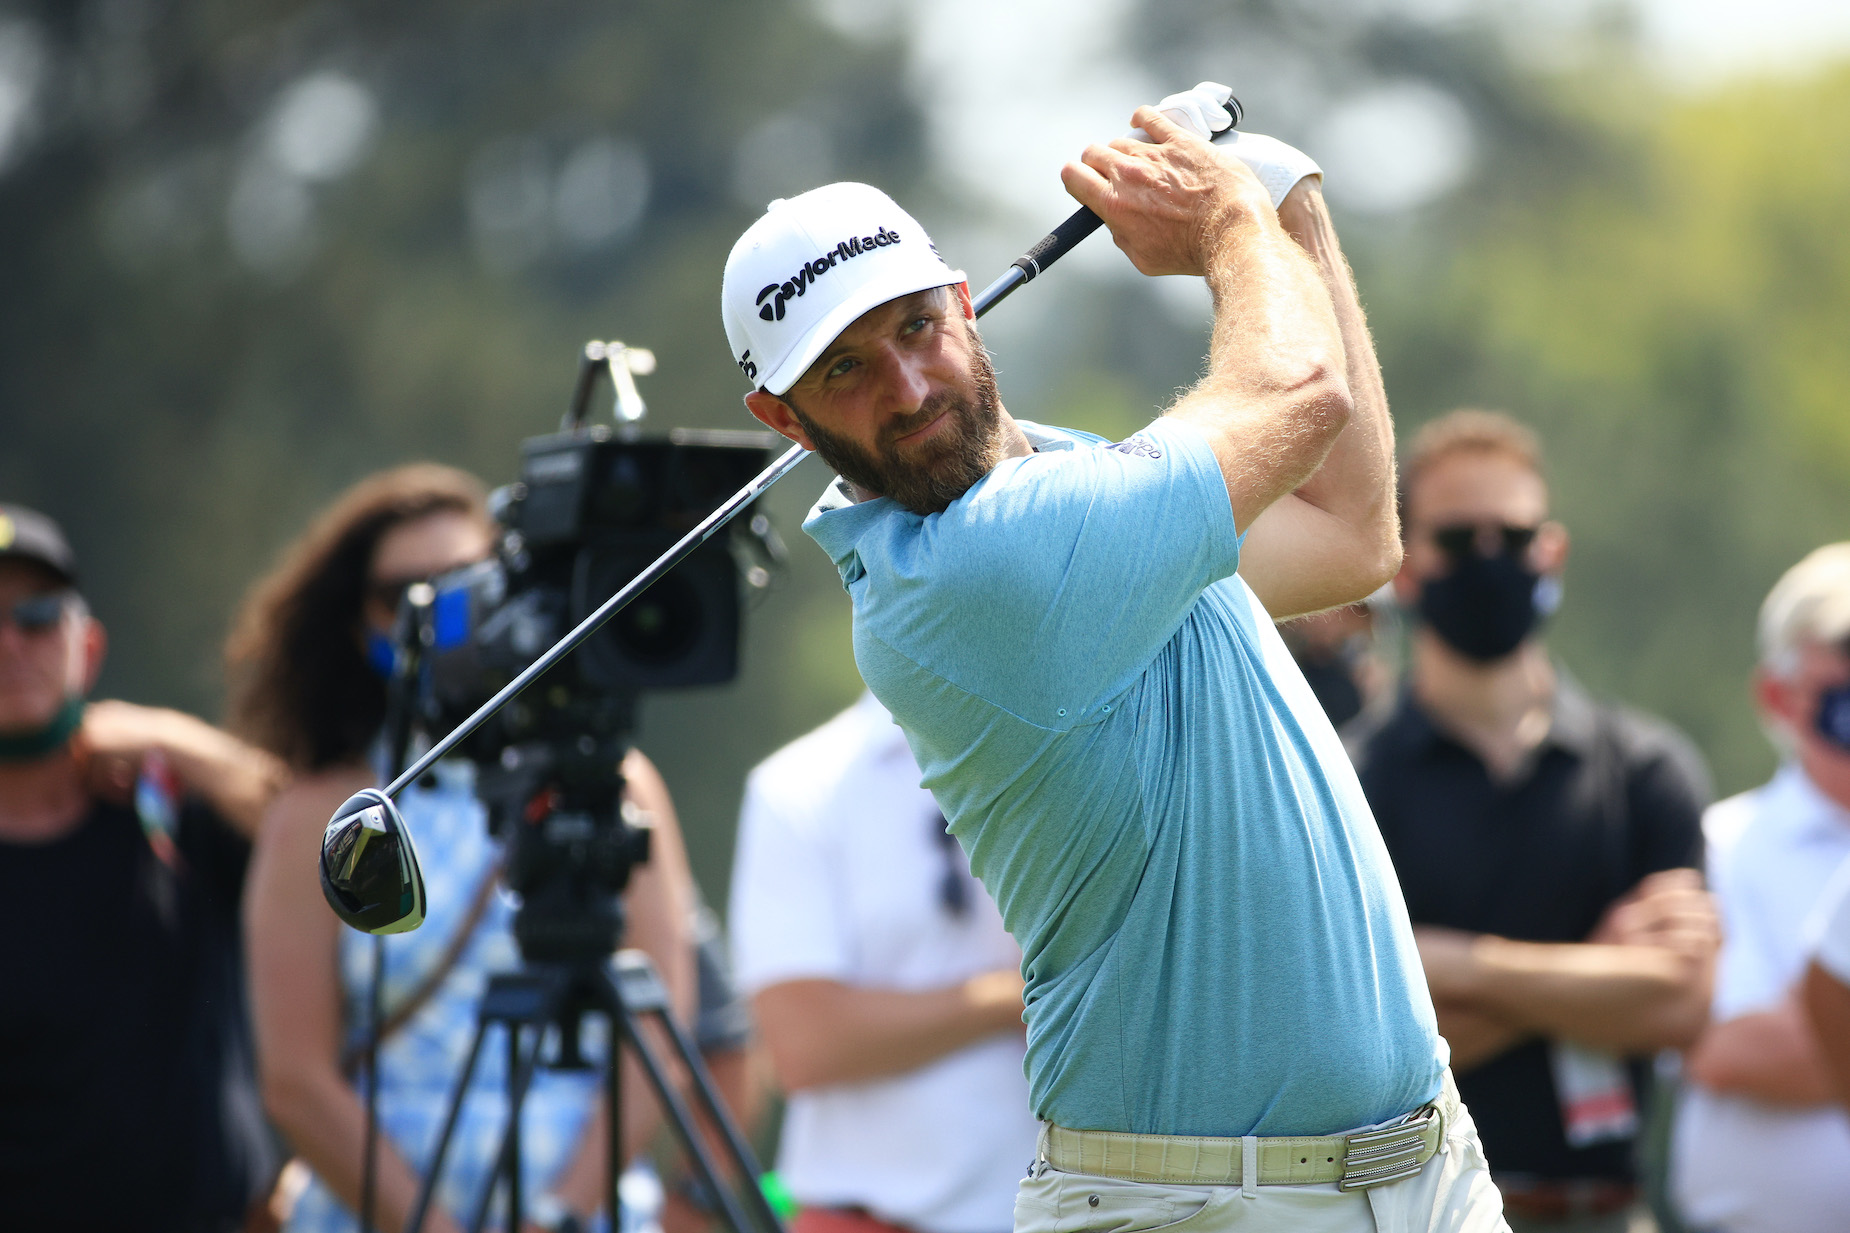 Dustin Johnson Could Have an Advantage at The Masters Thanks to Michael Jordan and His Legendary Trash Talk